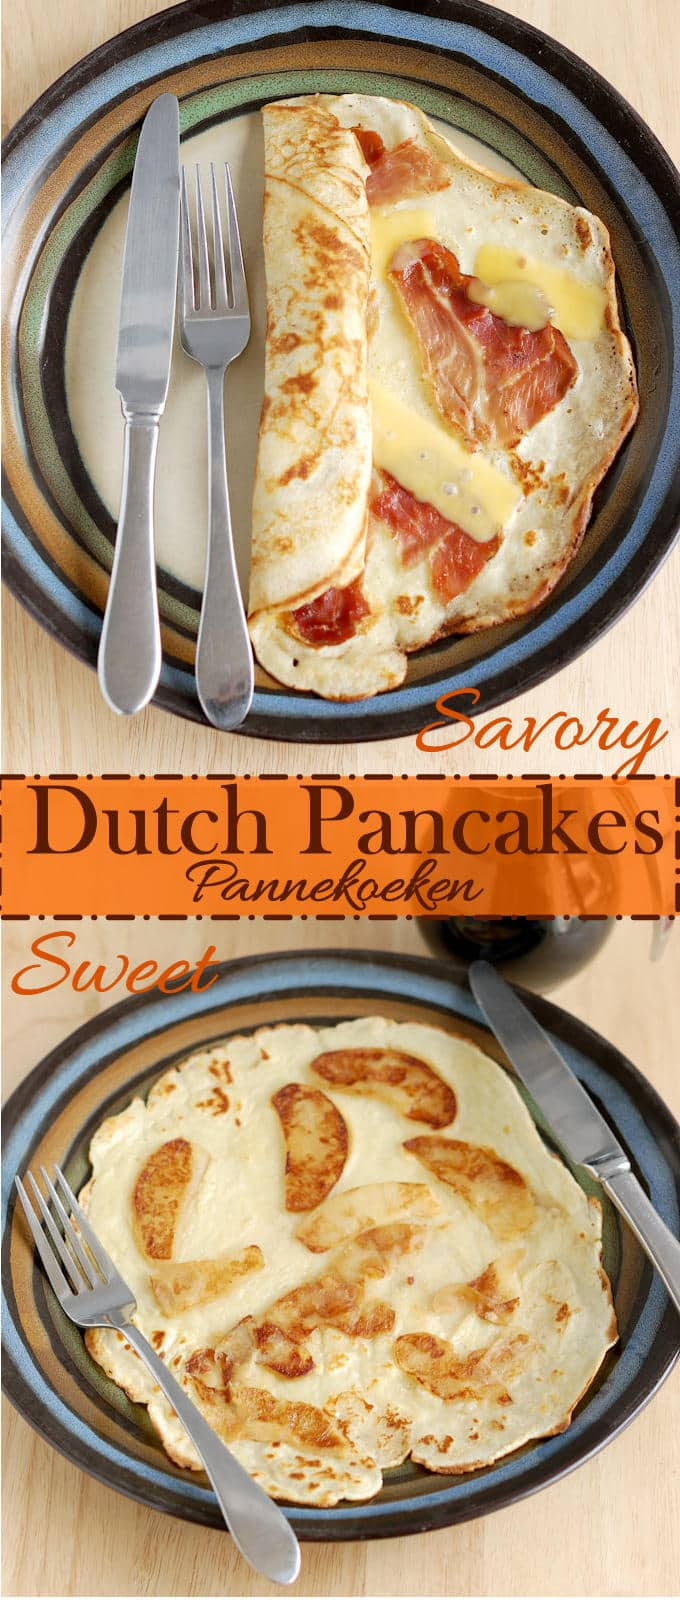 Make them savory or make them sweet-Dutch Pancakes are a delicious breakfast treat! Easy to make and very versatile.